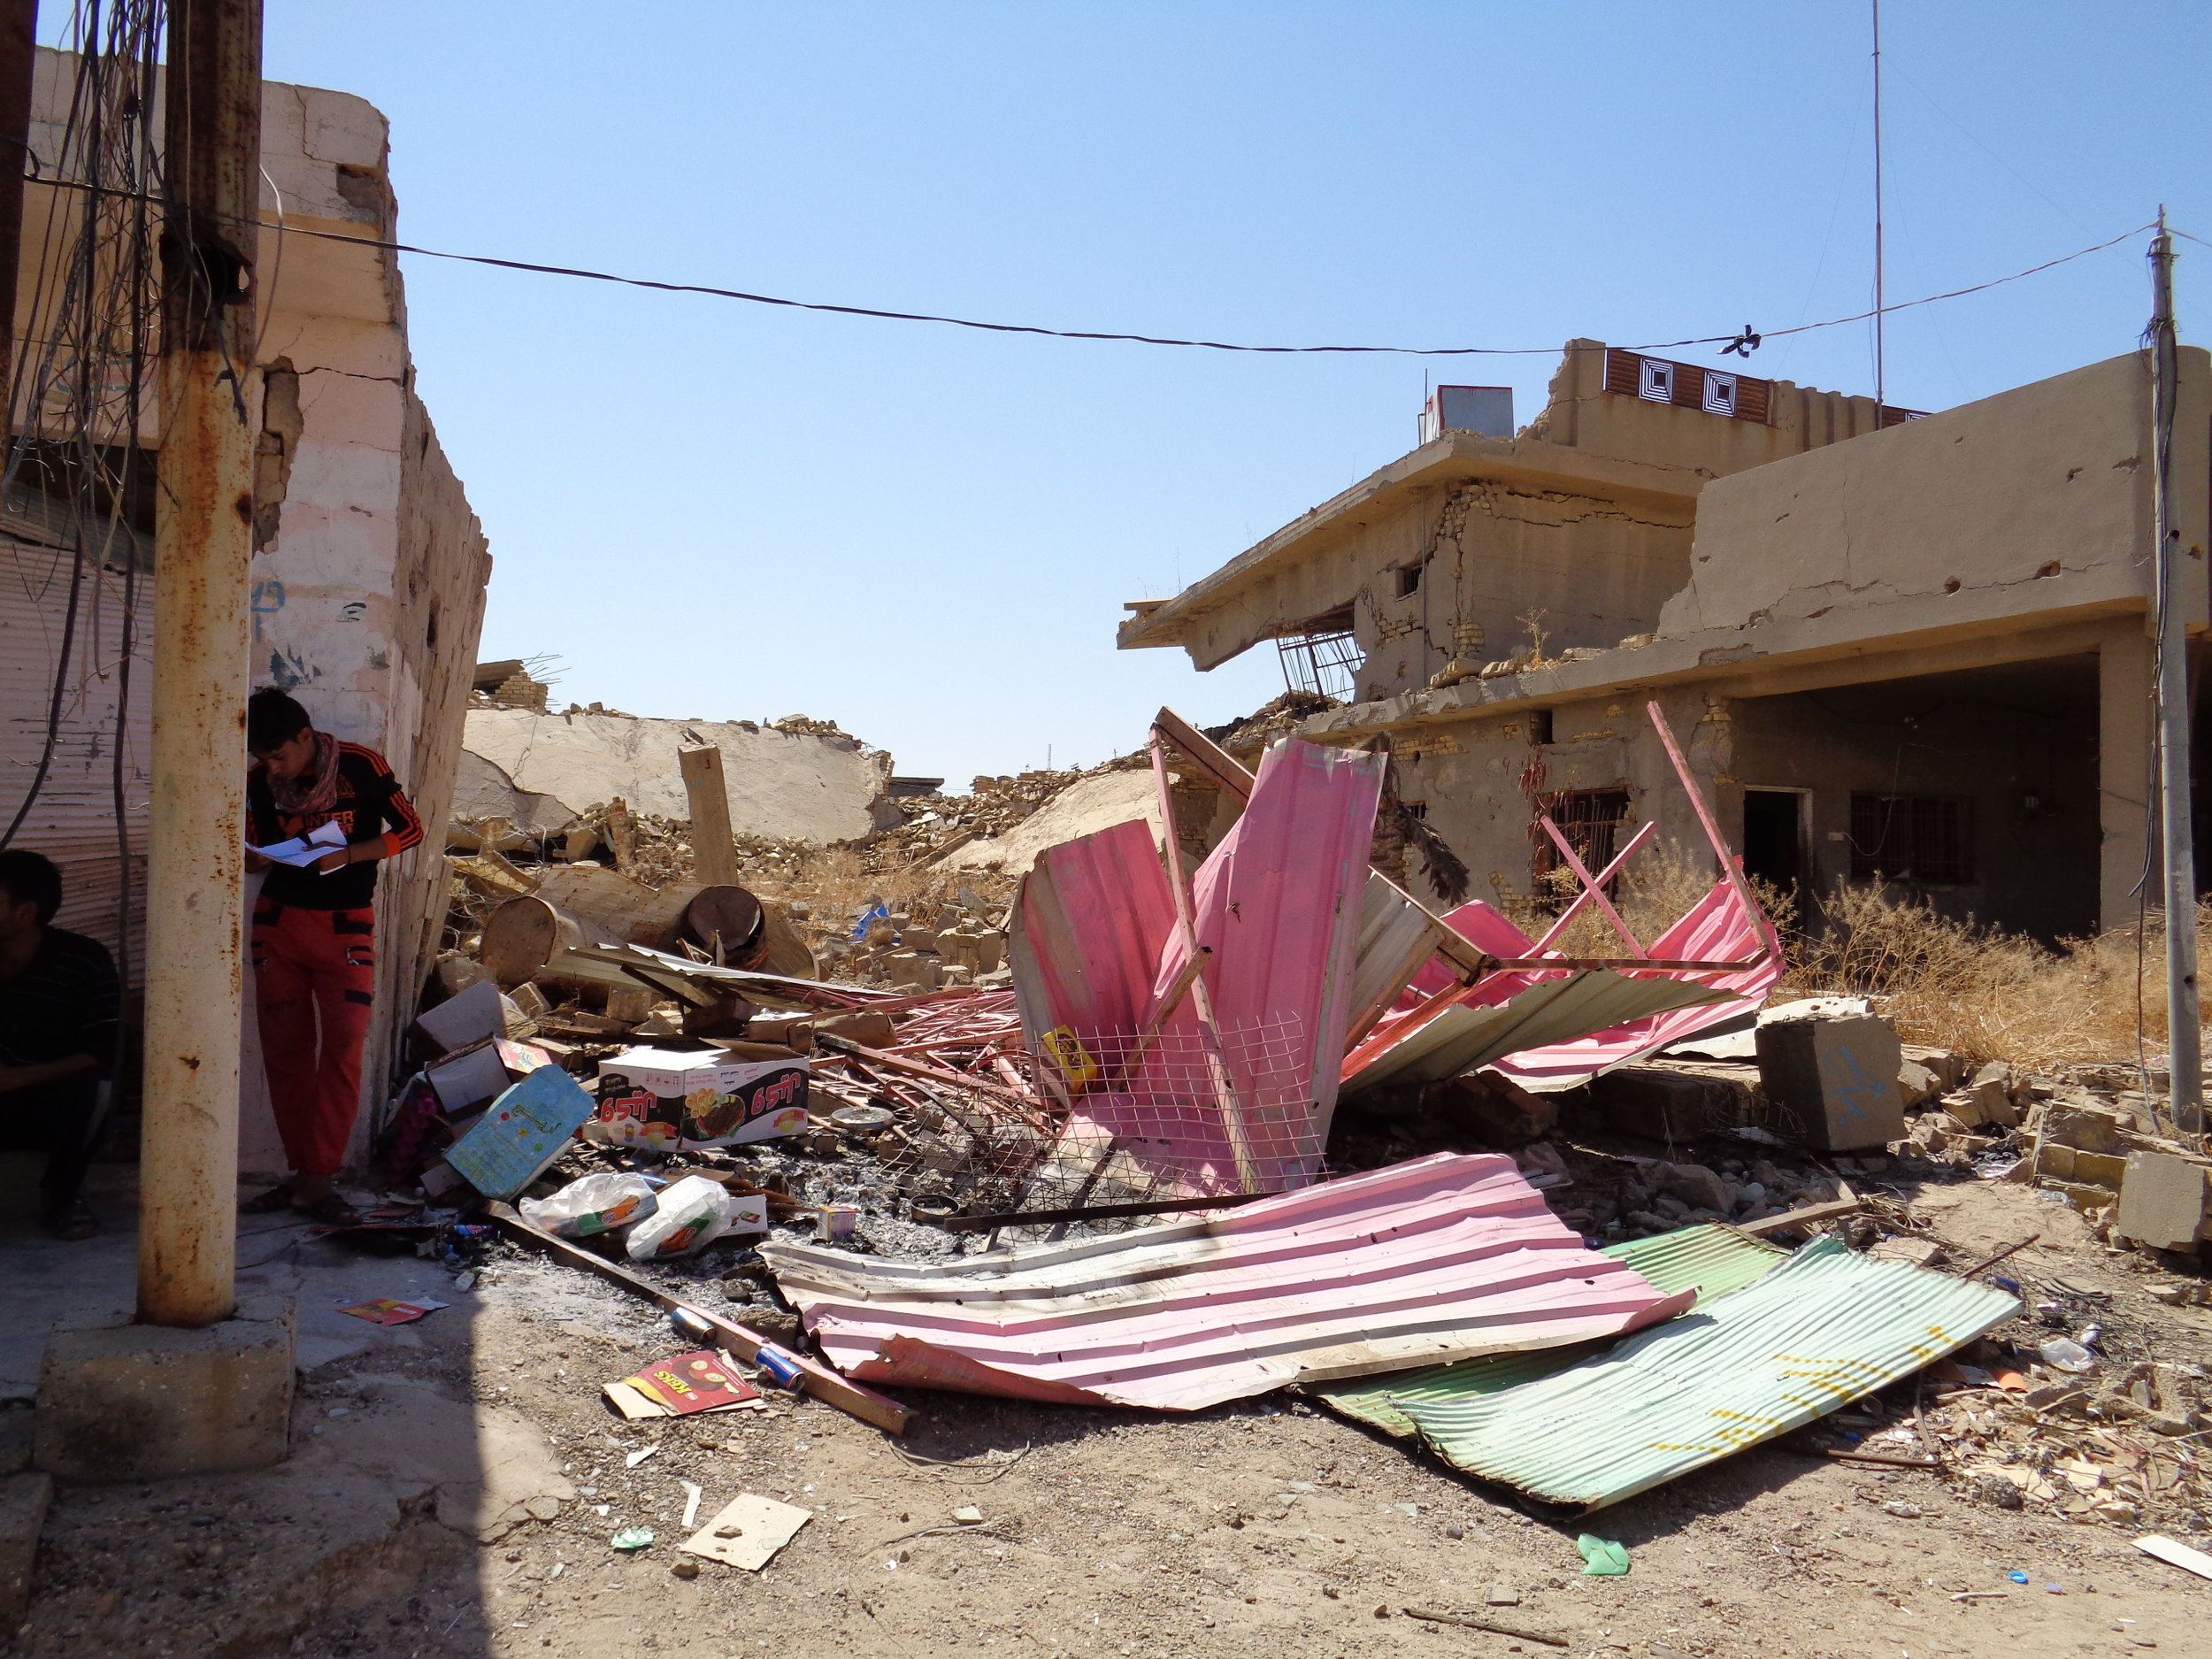 During ISIS's time in the town, airstrikes damaged scores of homes, businesses, and government buildings; others were burned, creating clouds of smoke to hide ISIS troops from aerial attack. RI met IDPs who were living in abandoned houses or shops because their homes were destroyed in the fighting.